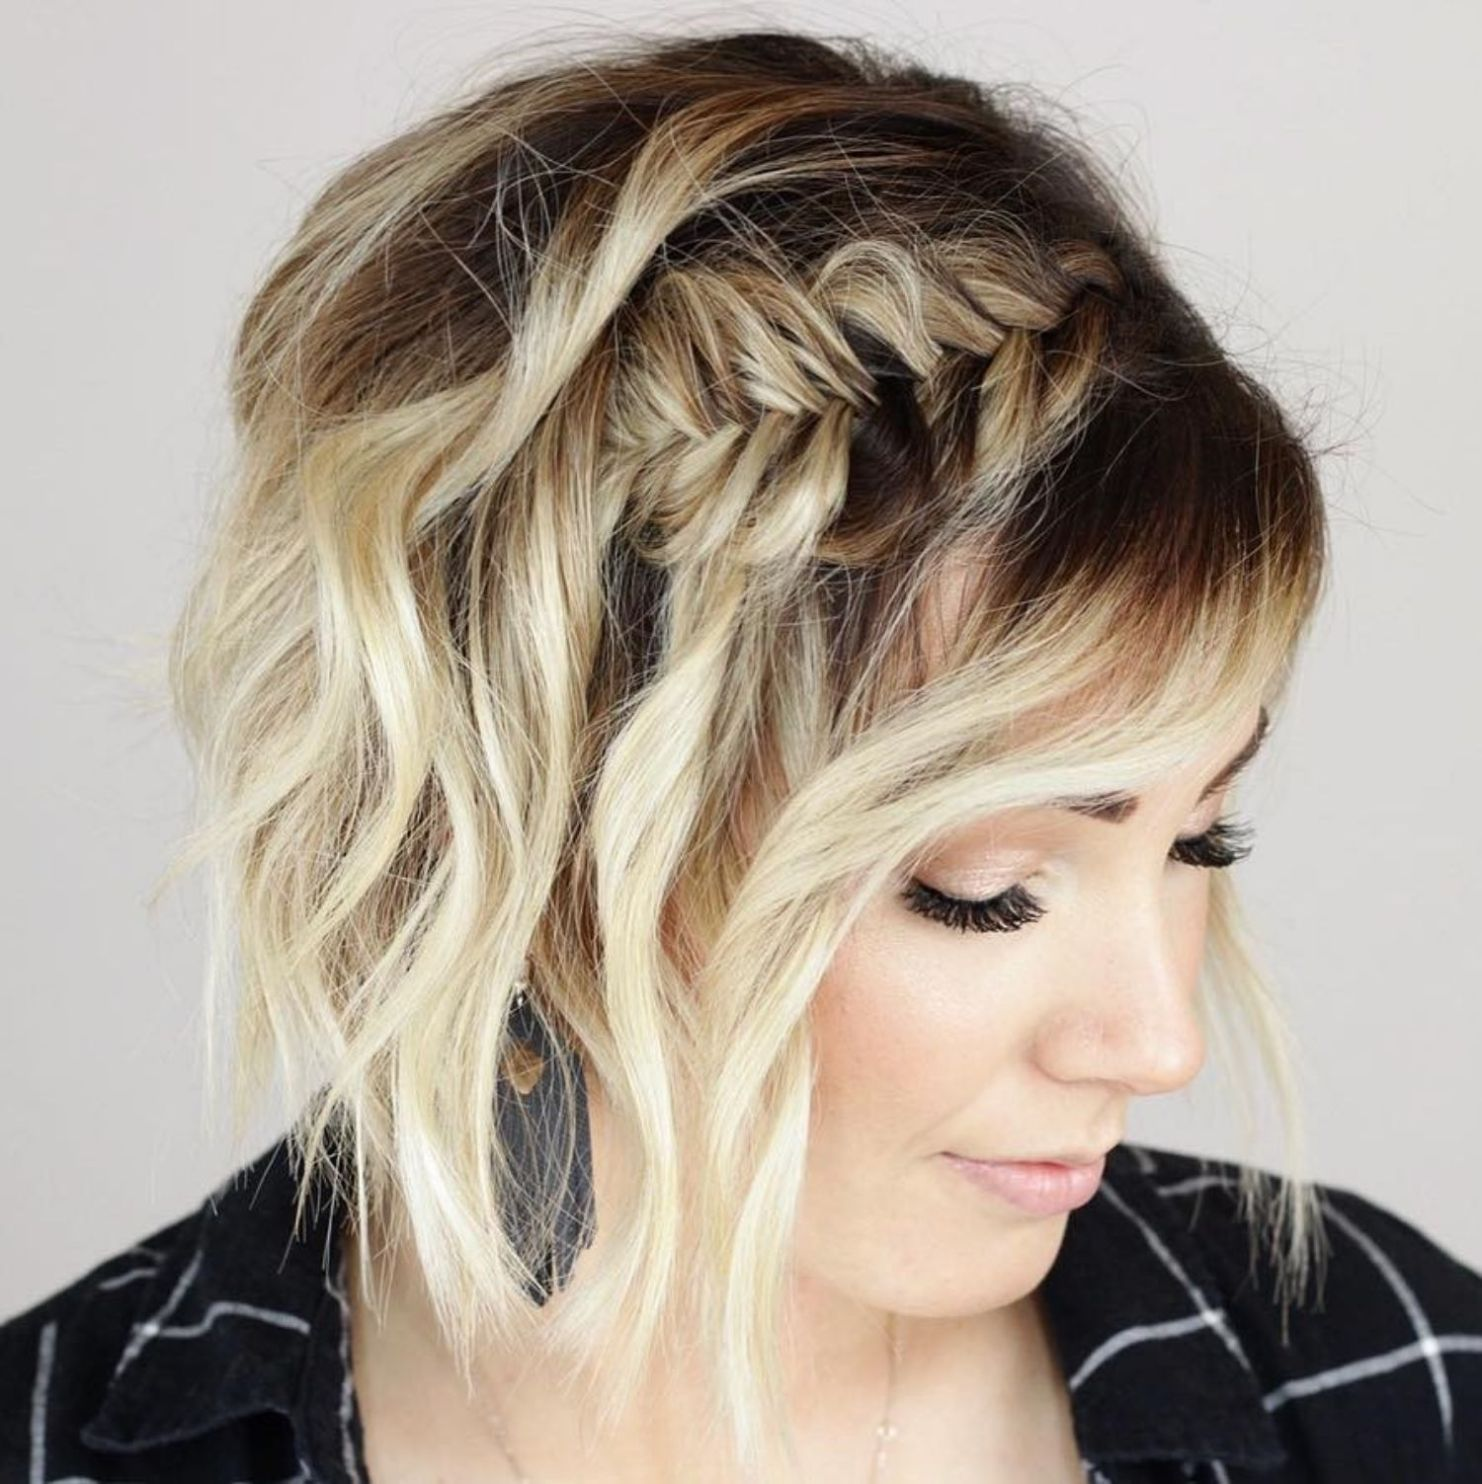 60 Creative Updo Ideas For Short Hair In 2020 Short Hair Styles Short Hair Updo Fish Tail Braid